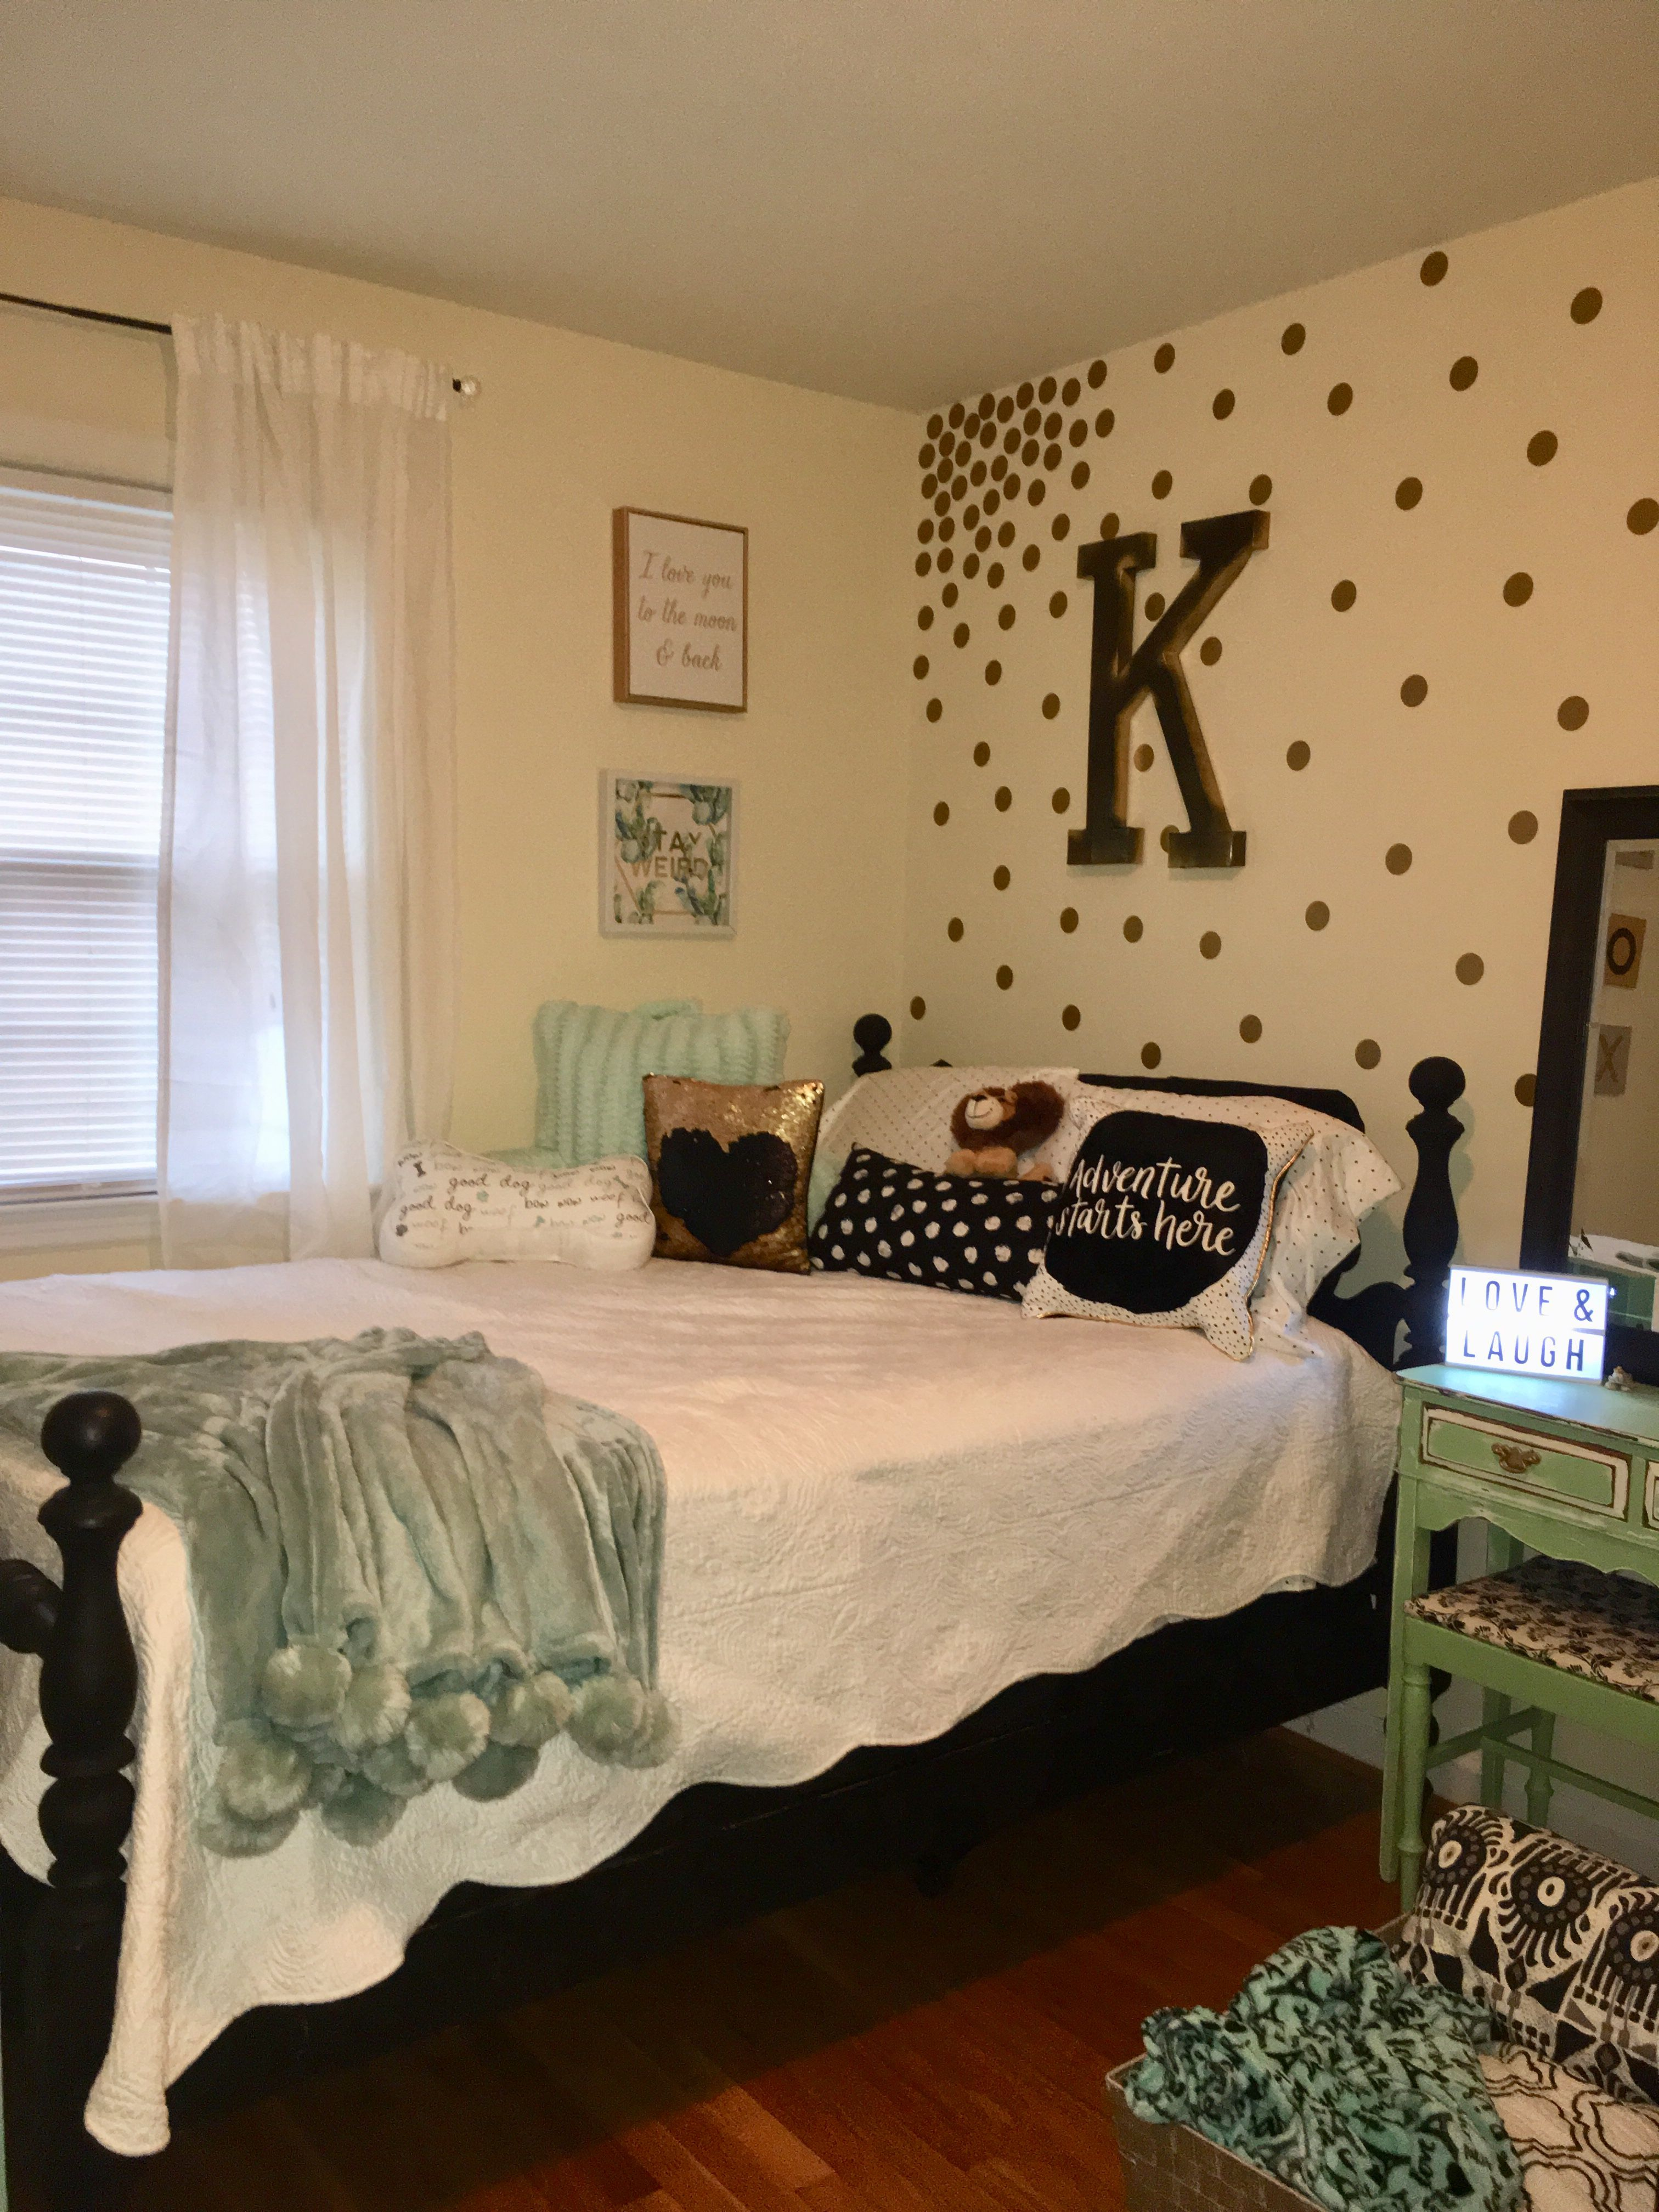 16 Year Olds Girls Side Of Room After Room Ideas Bedroom Old Room Bedroom Themes